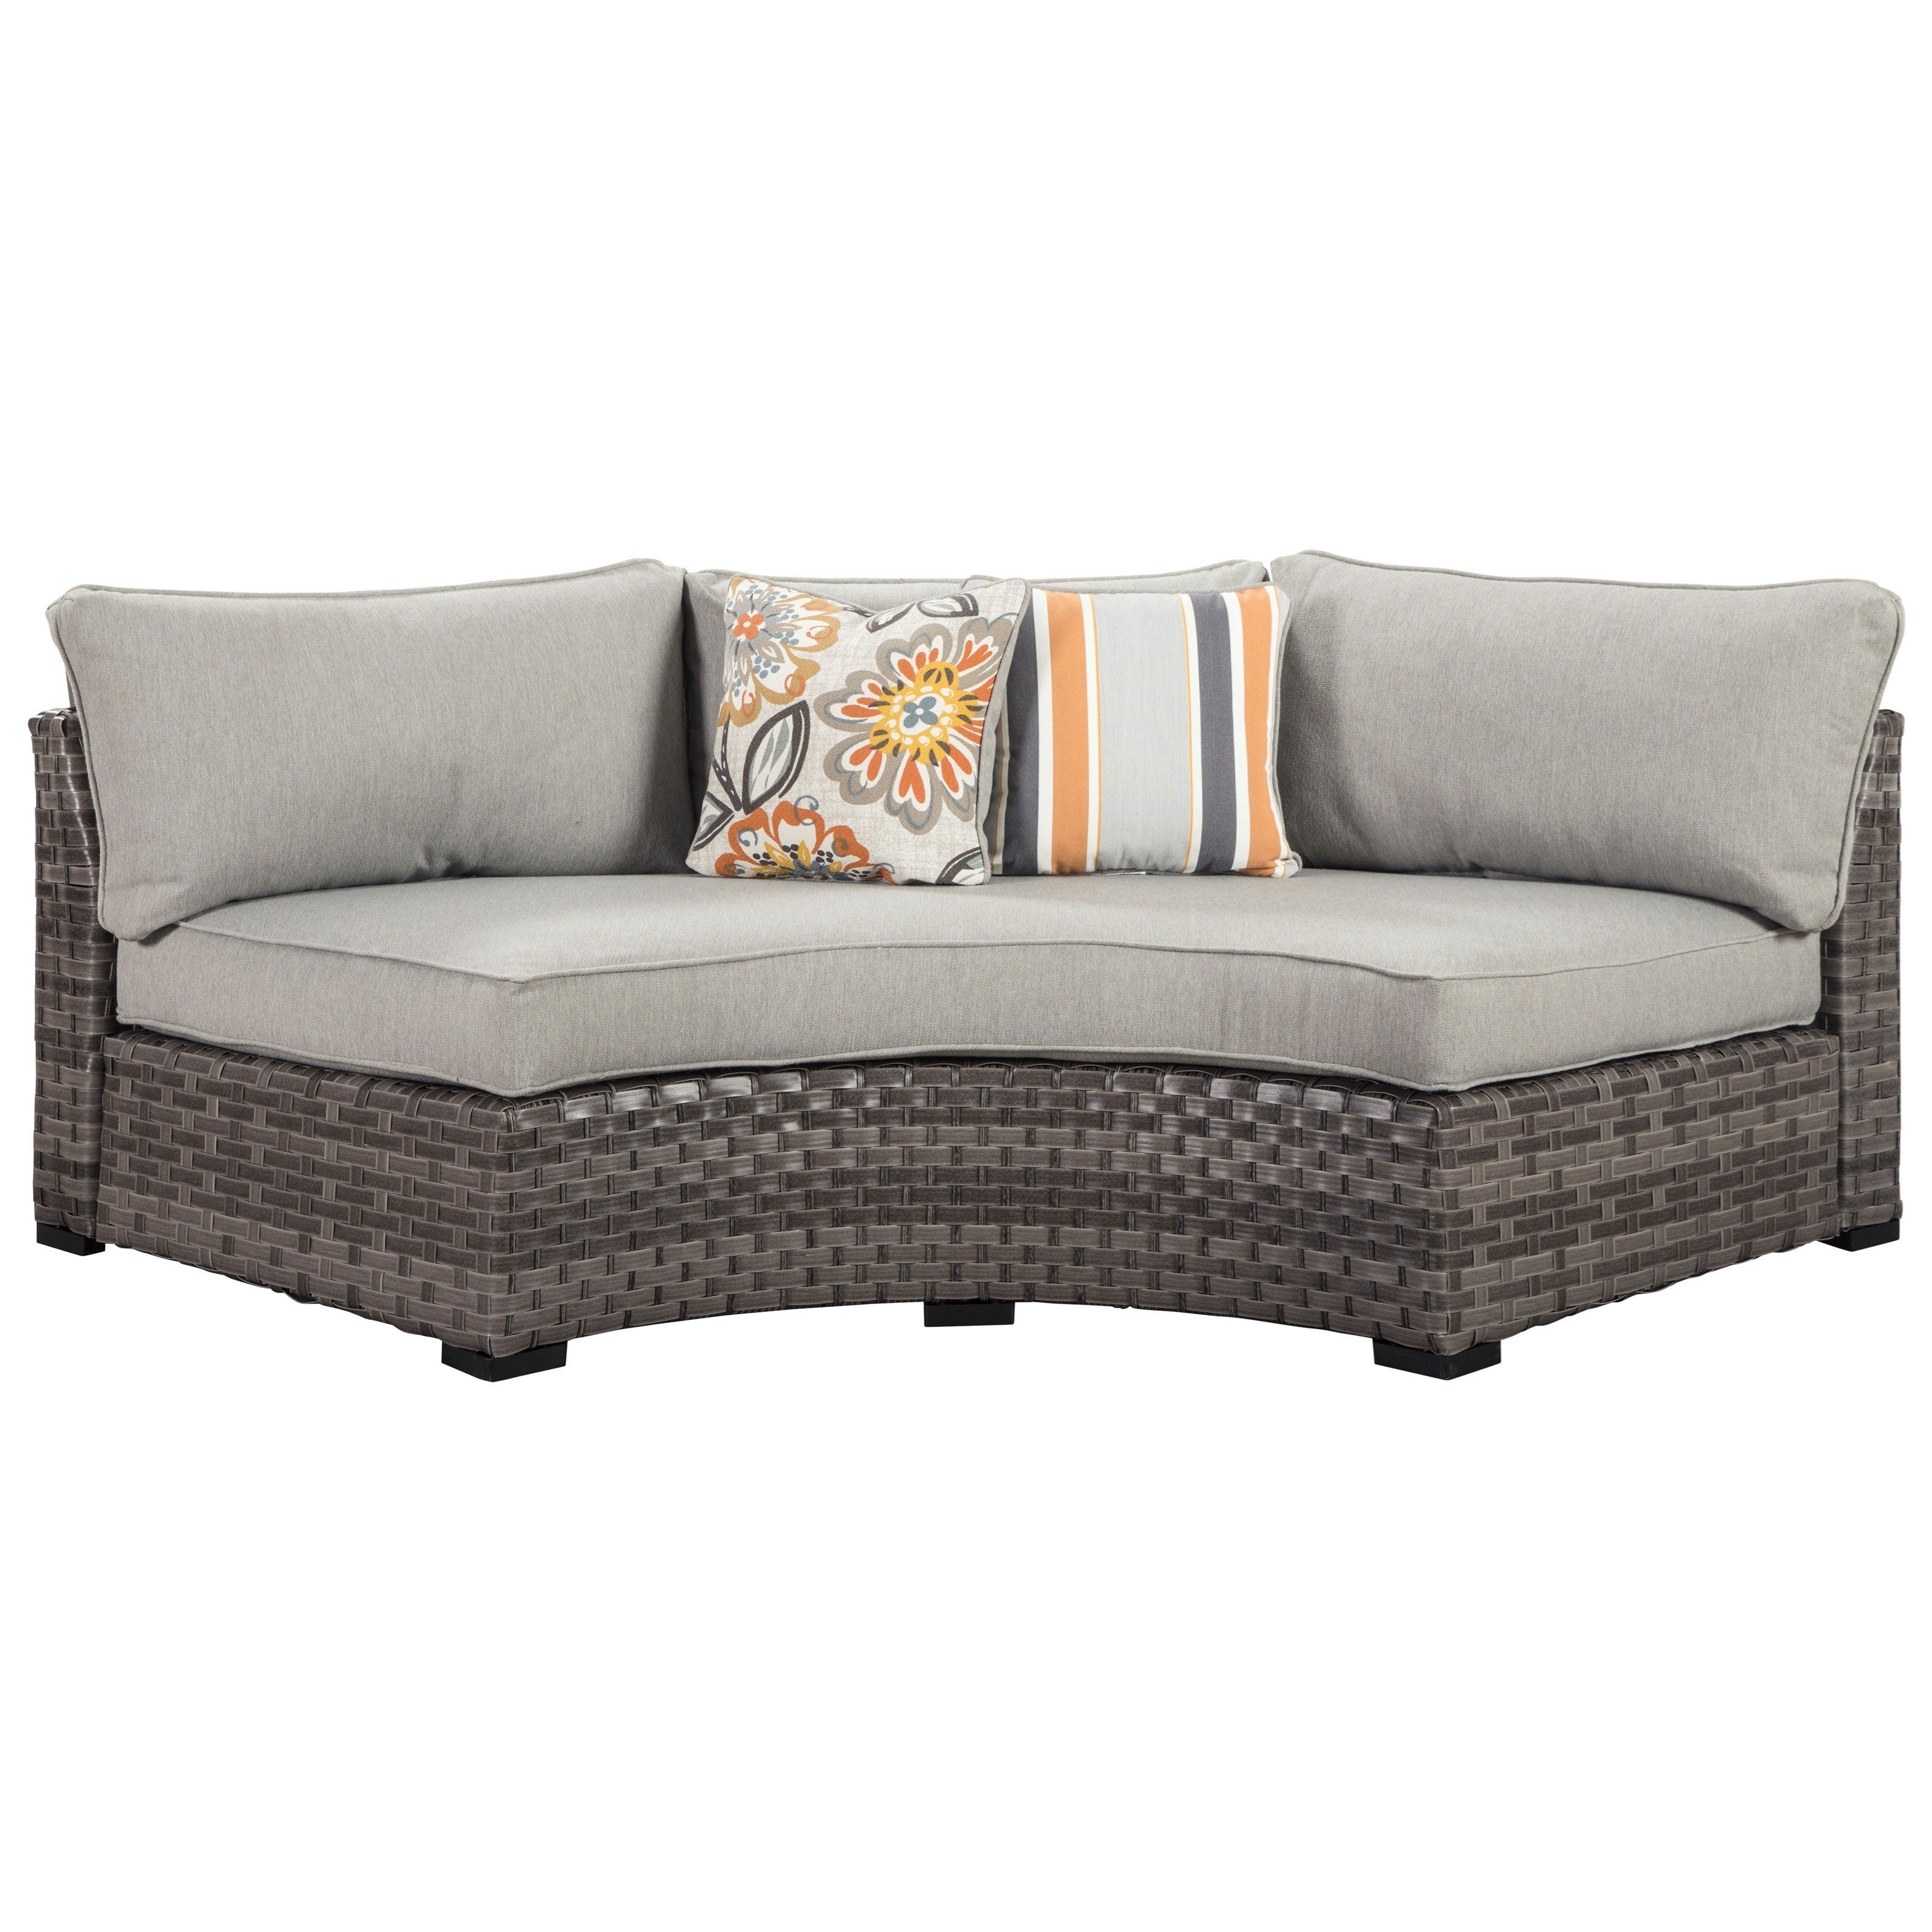 Spring Dew Loveseat/Curved Corner Chair with Cushion by Ashley Signature  Design